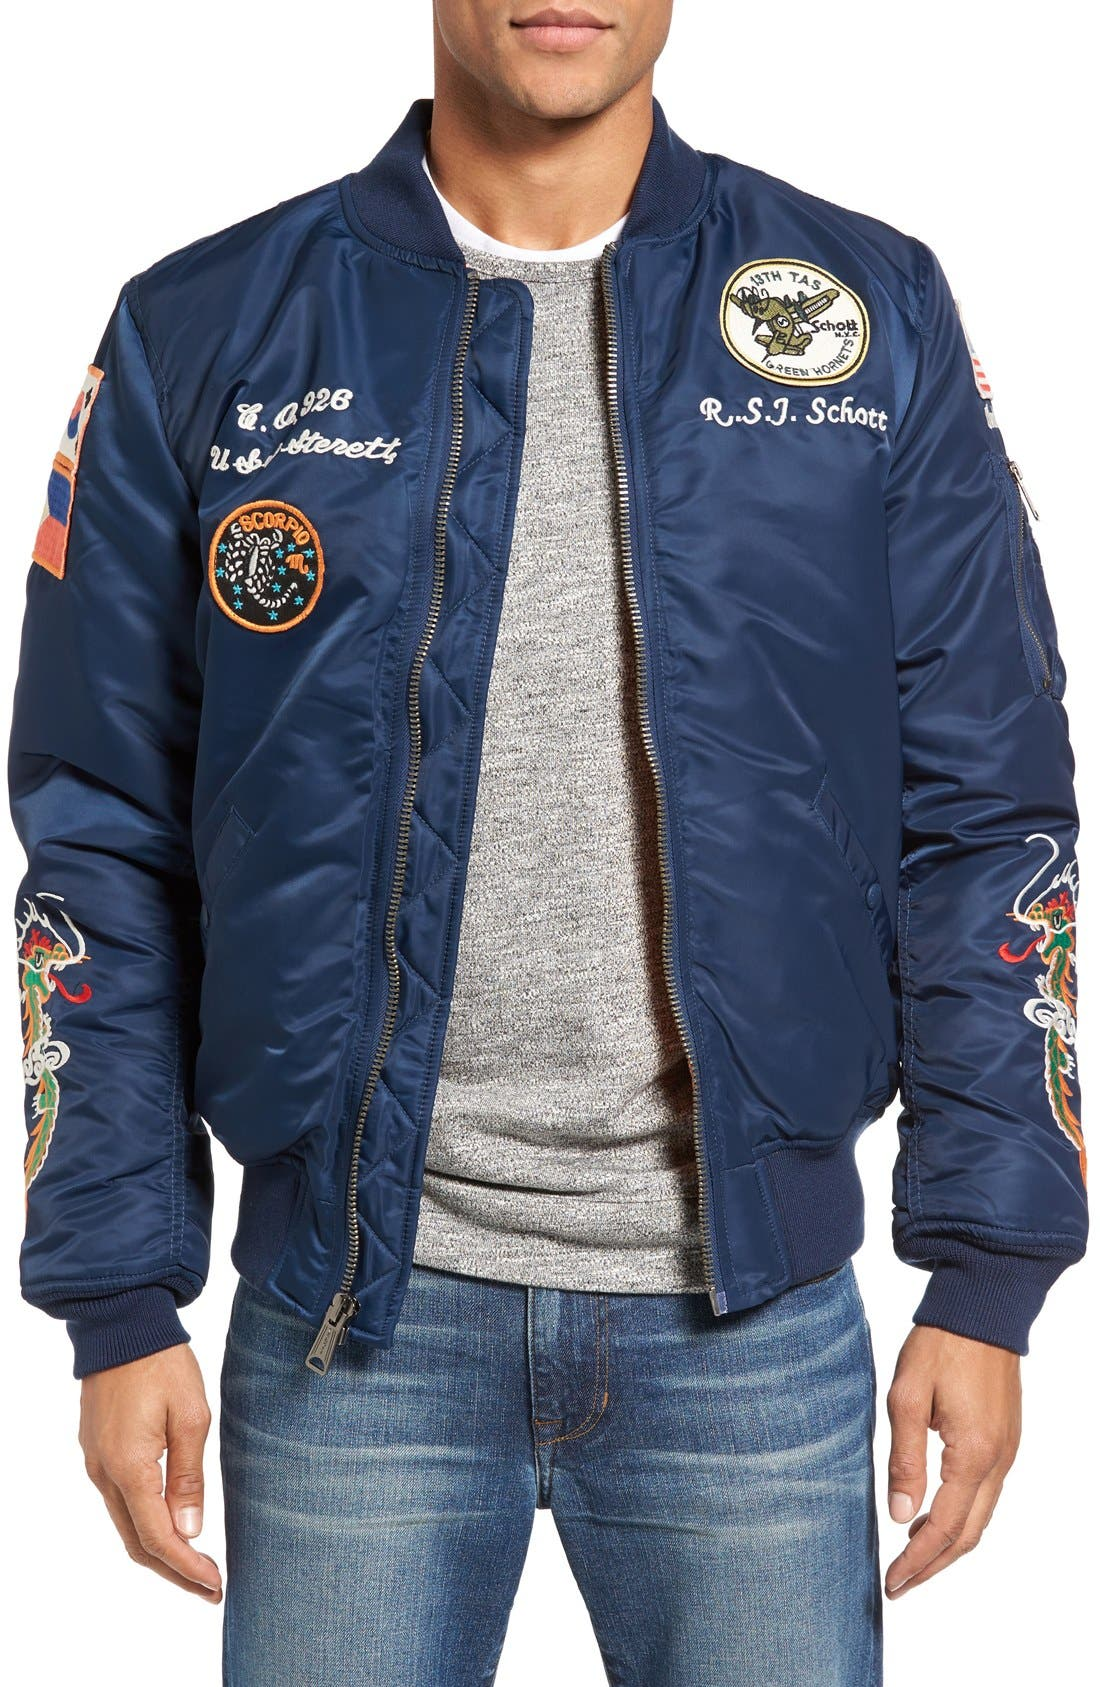 SCHOTT NYC Souvenir MA-1 Flight Jacket